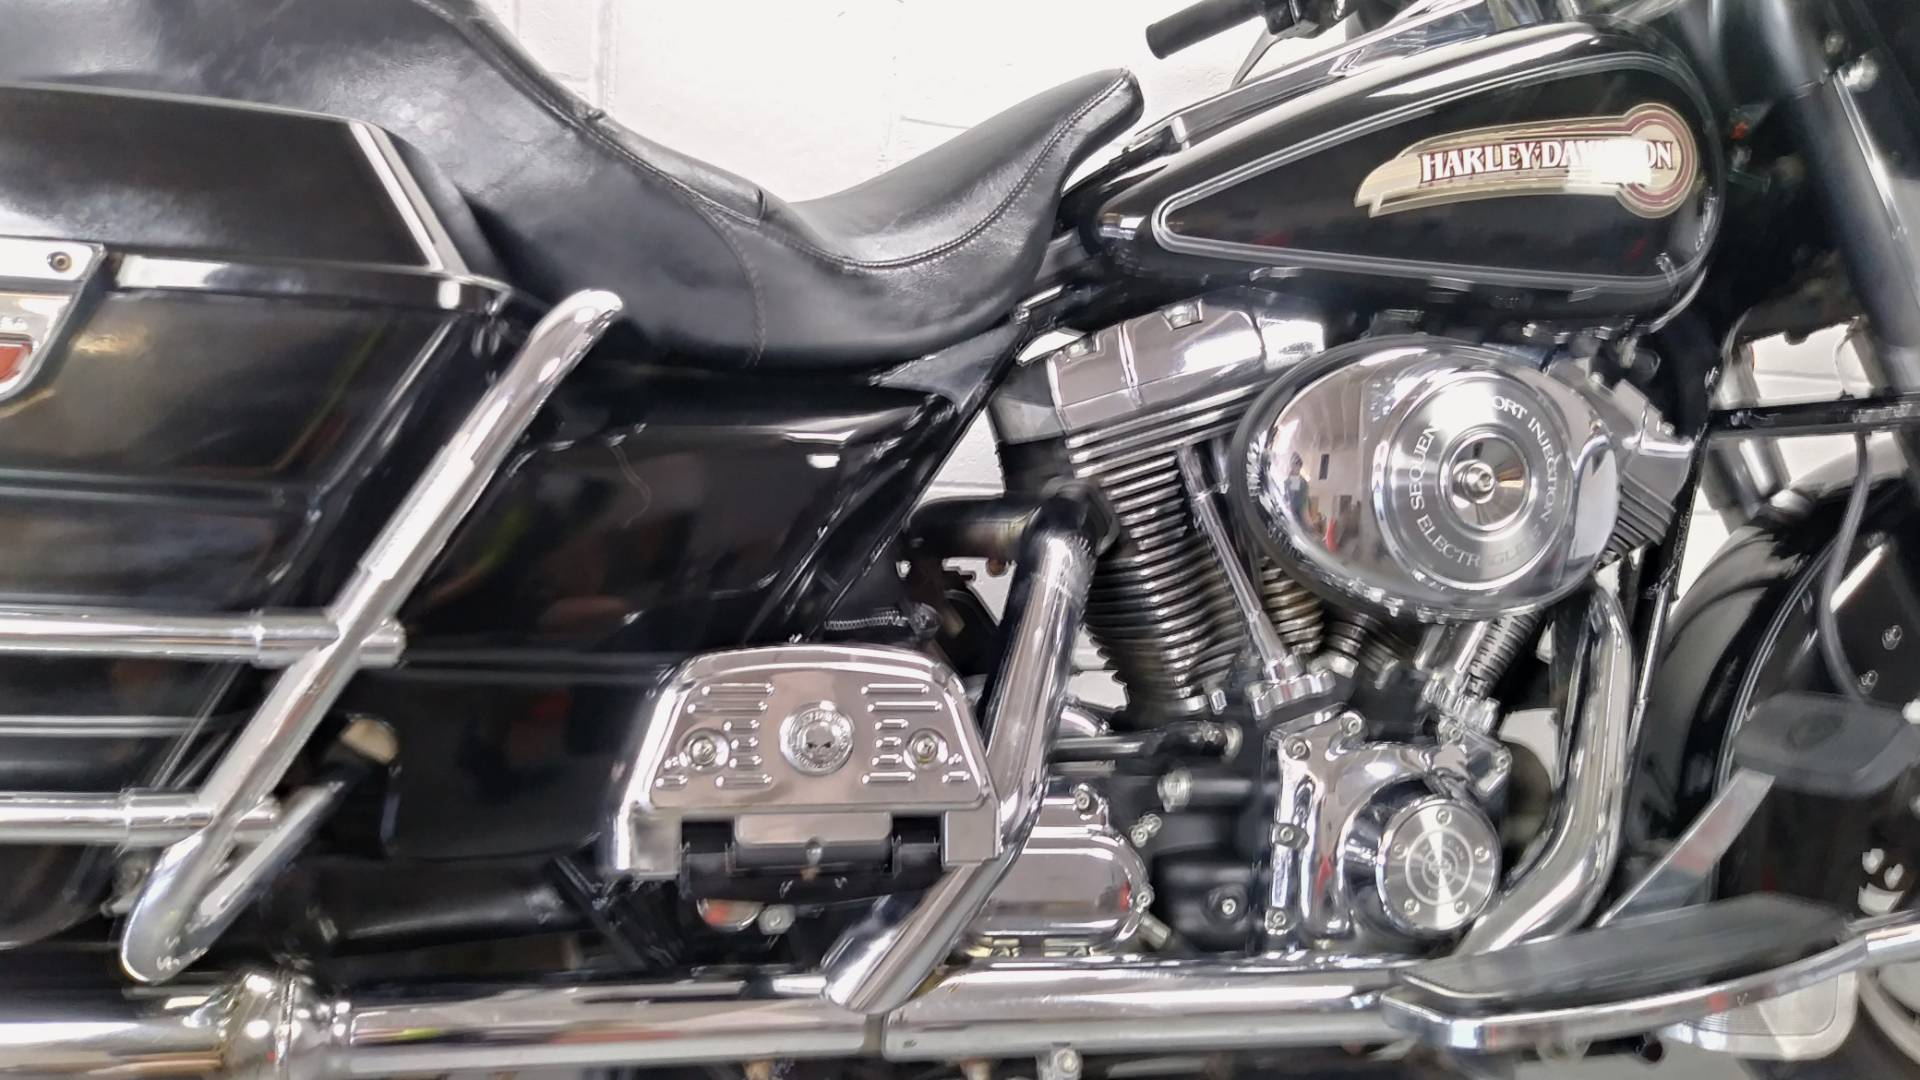 2006 Harley-Davidson Electra Glide® Classic in Stillwater, Oklahoma - Photo 2